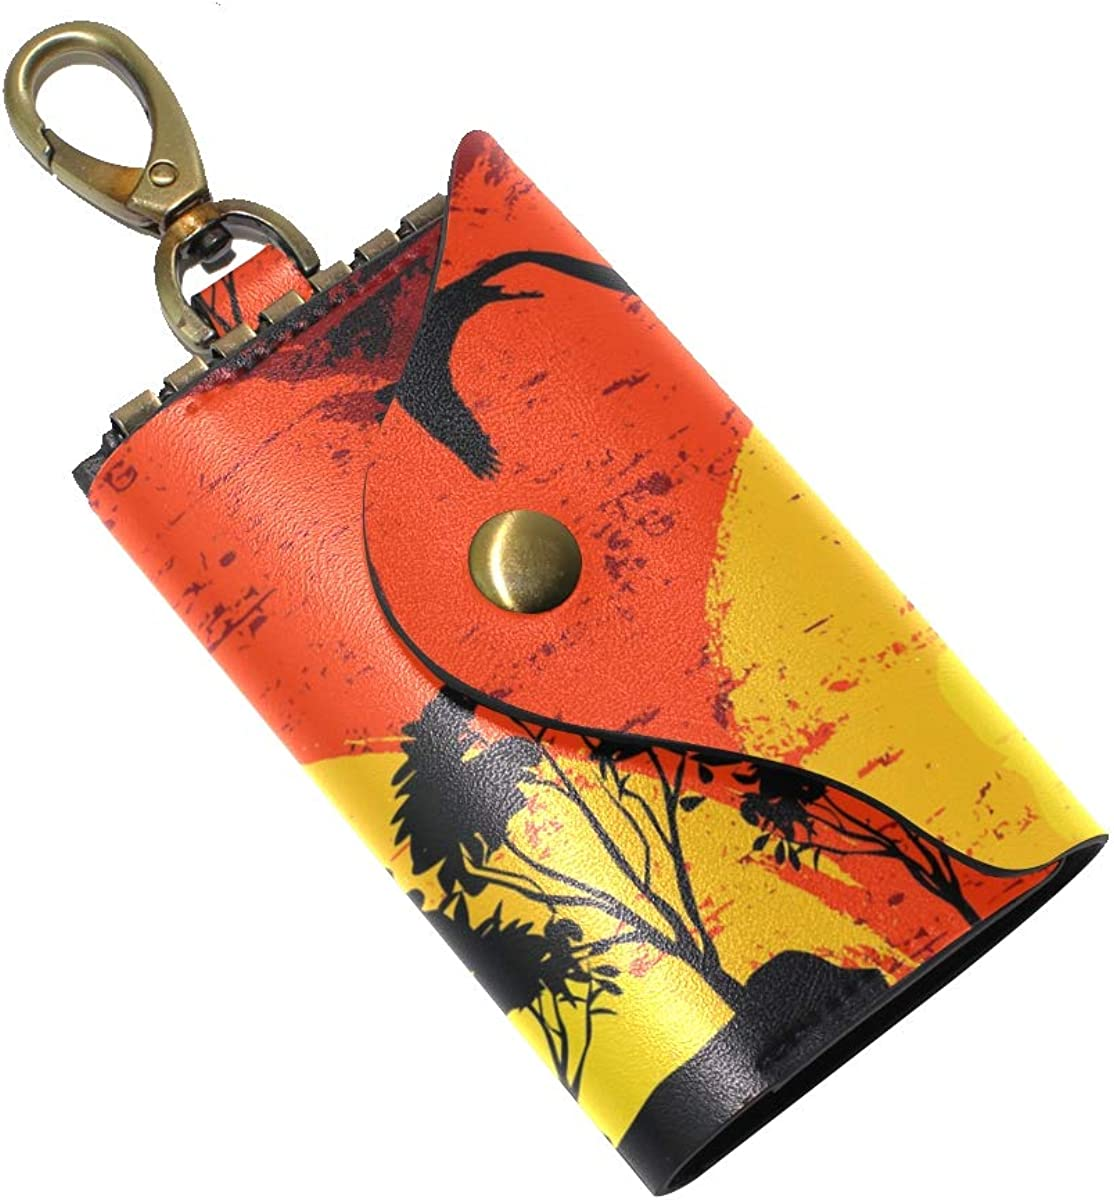 KEAKIA Sunset In Wild Africa Leather Key Case Wallets Tri-fold Key Holder Keychains with 6 Hooks 2 Slot Snap Closure for Men Women